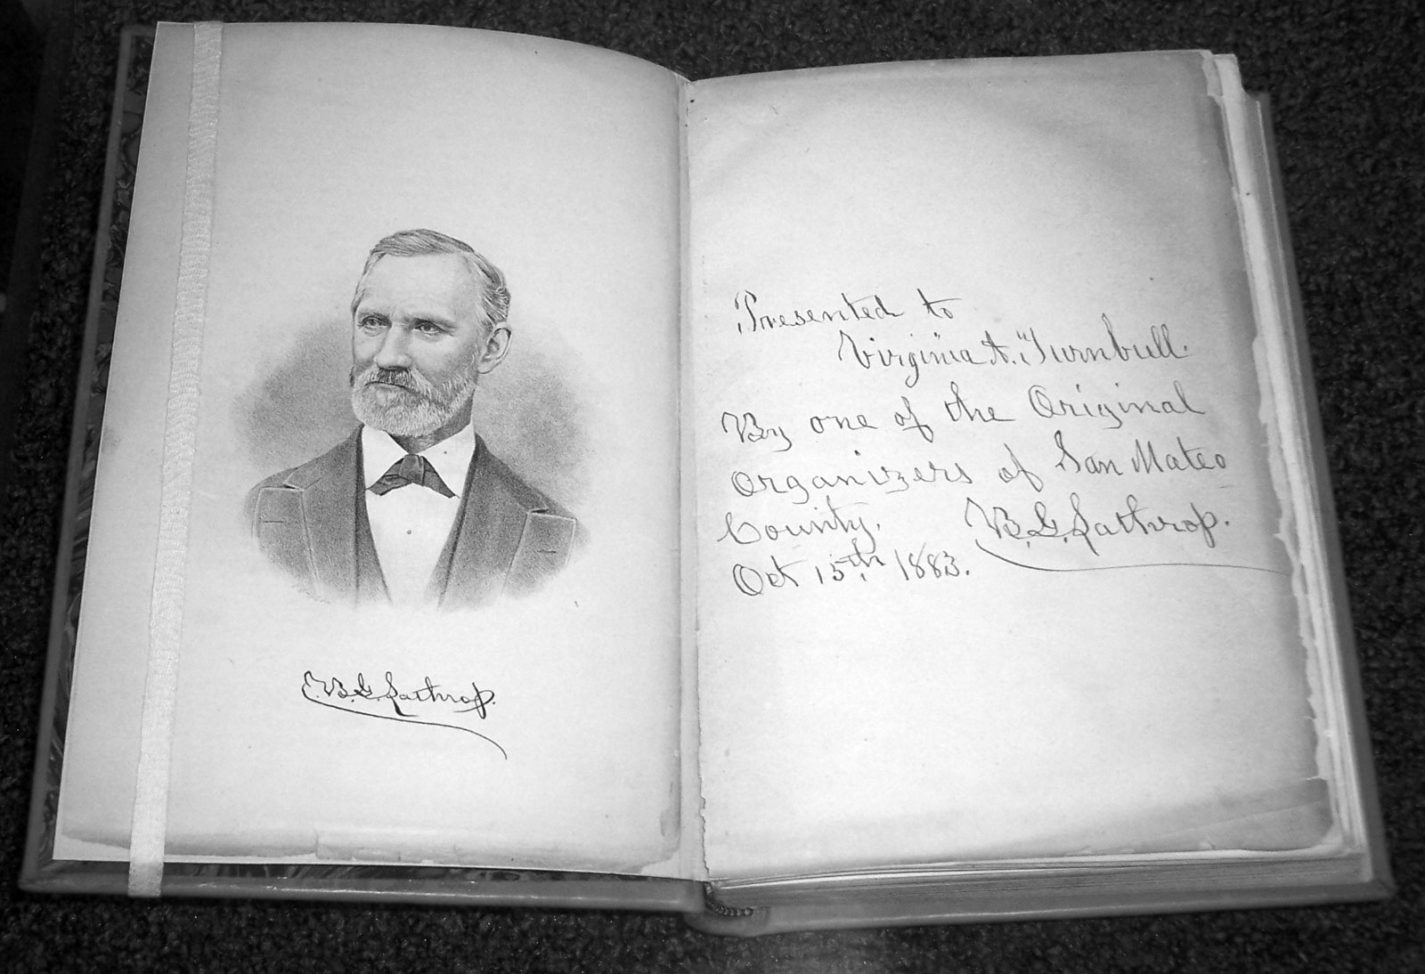 Archive book of the History of San Mateo County. Inscribed by Benjamin G. Lathrop. Presented to Virginia Turnbull By one of the Original Organizers of San Mateo County, B. G. Lathrop Oct 15th. 1883.